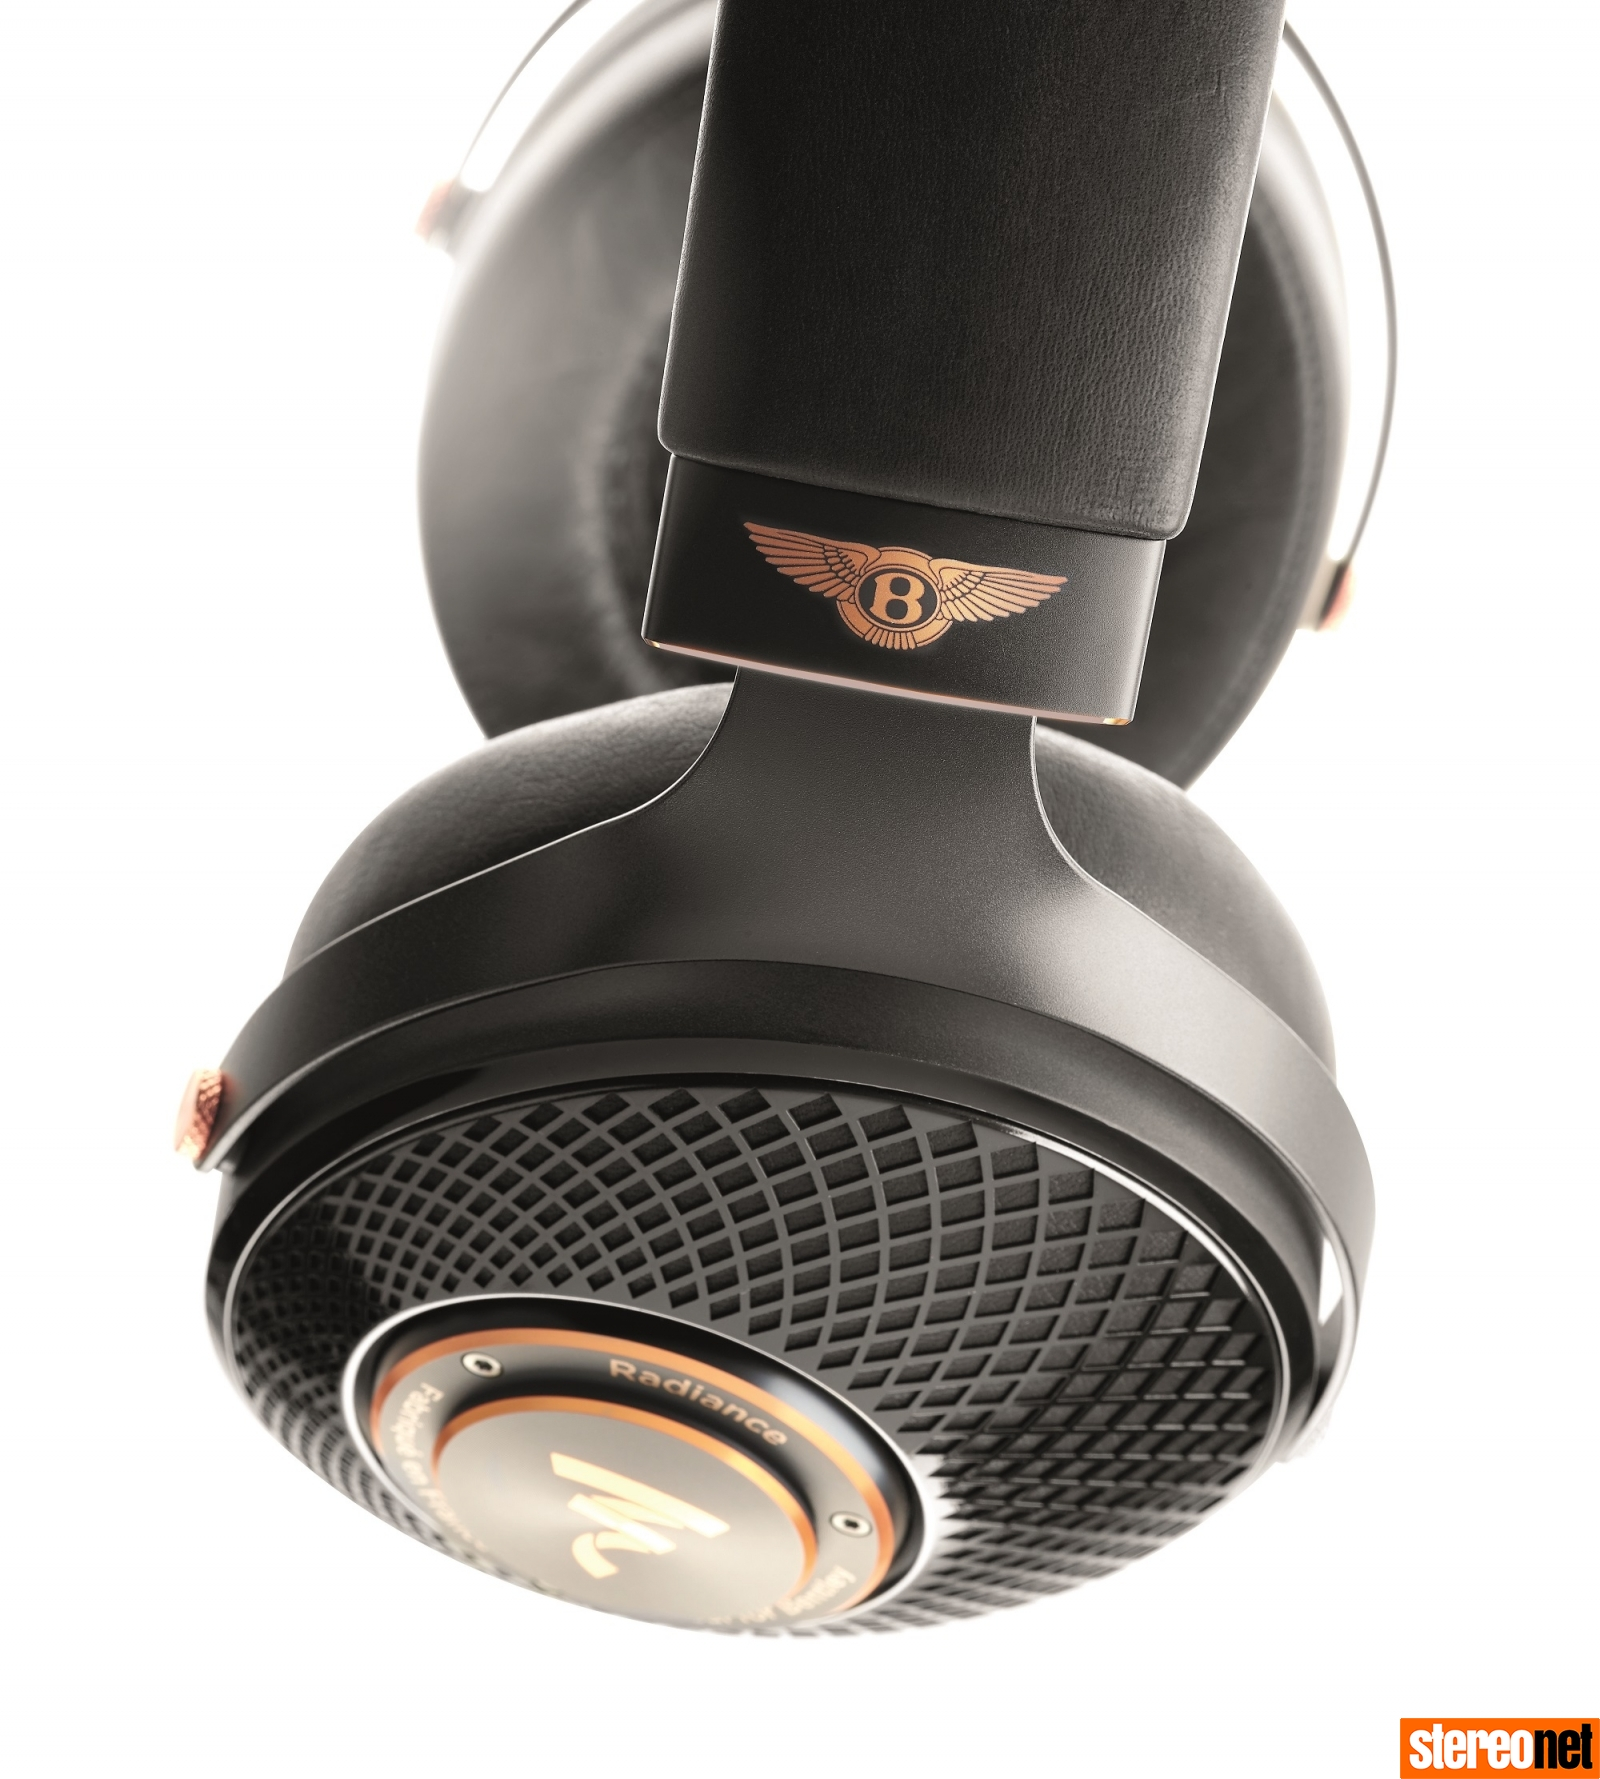 Focal for Bentley Radiance